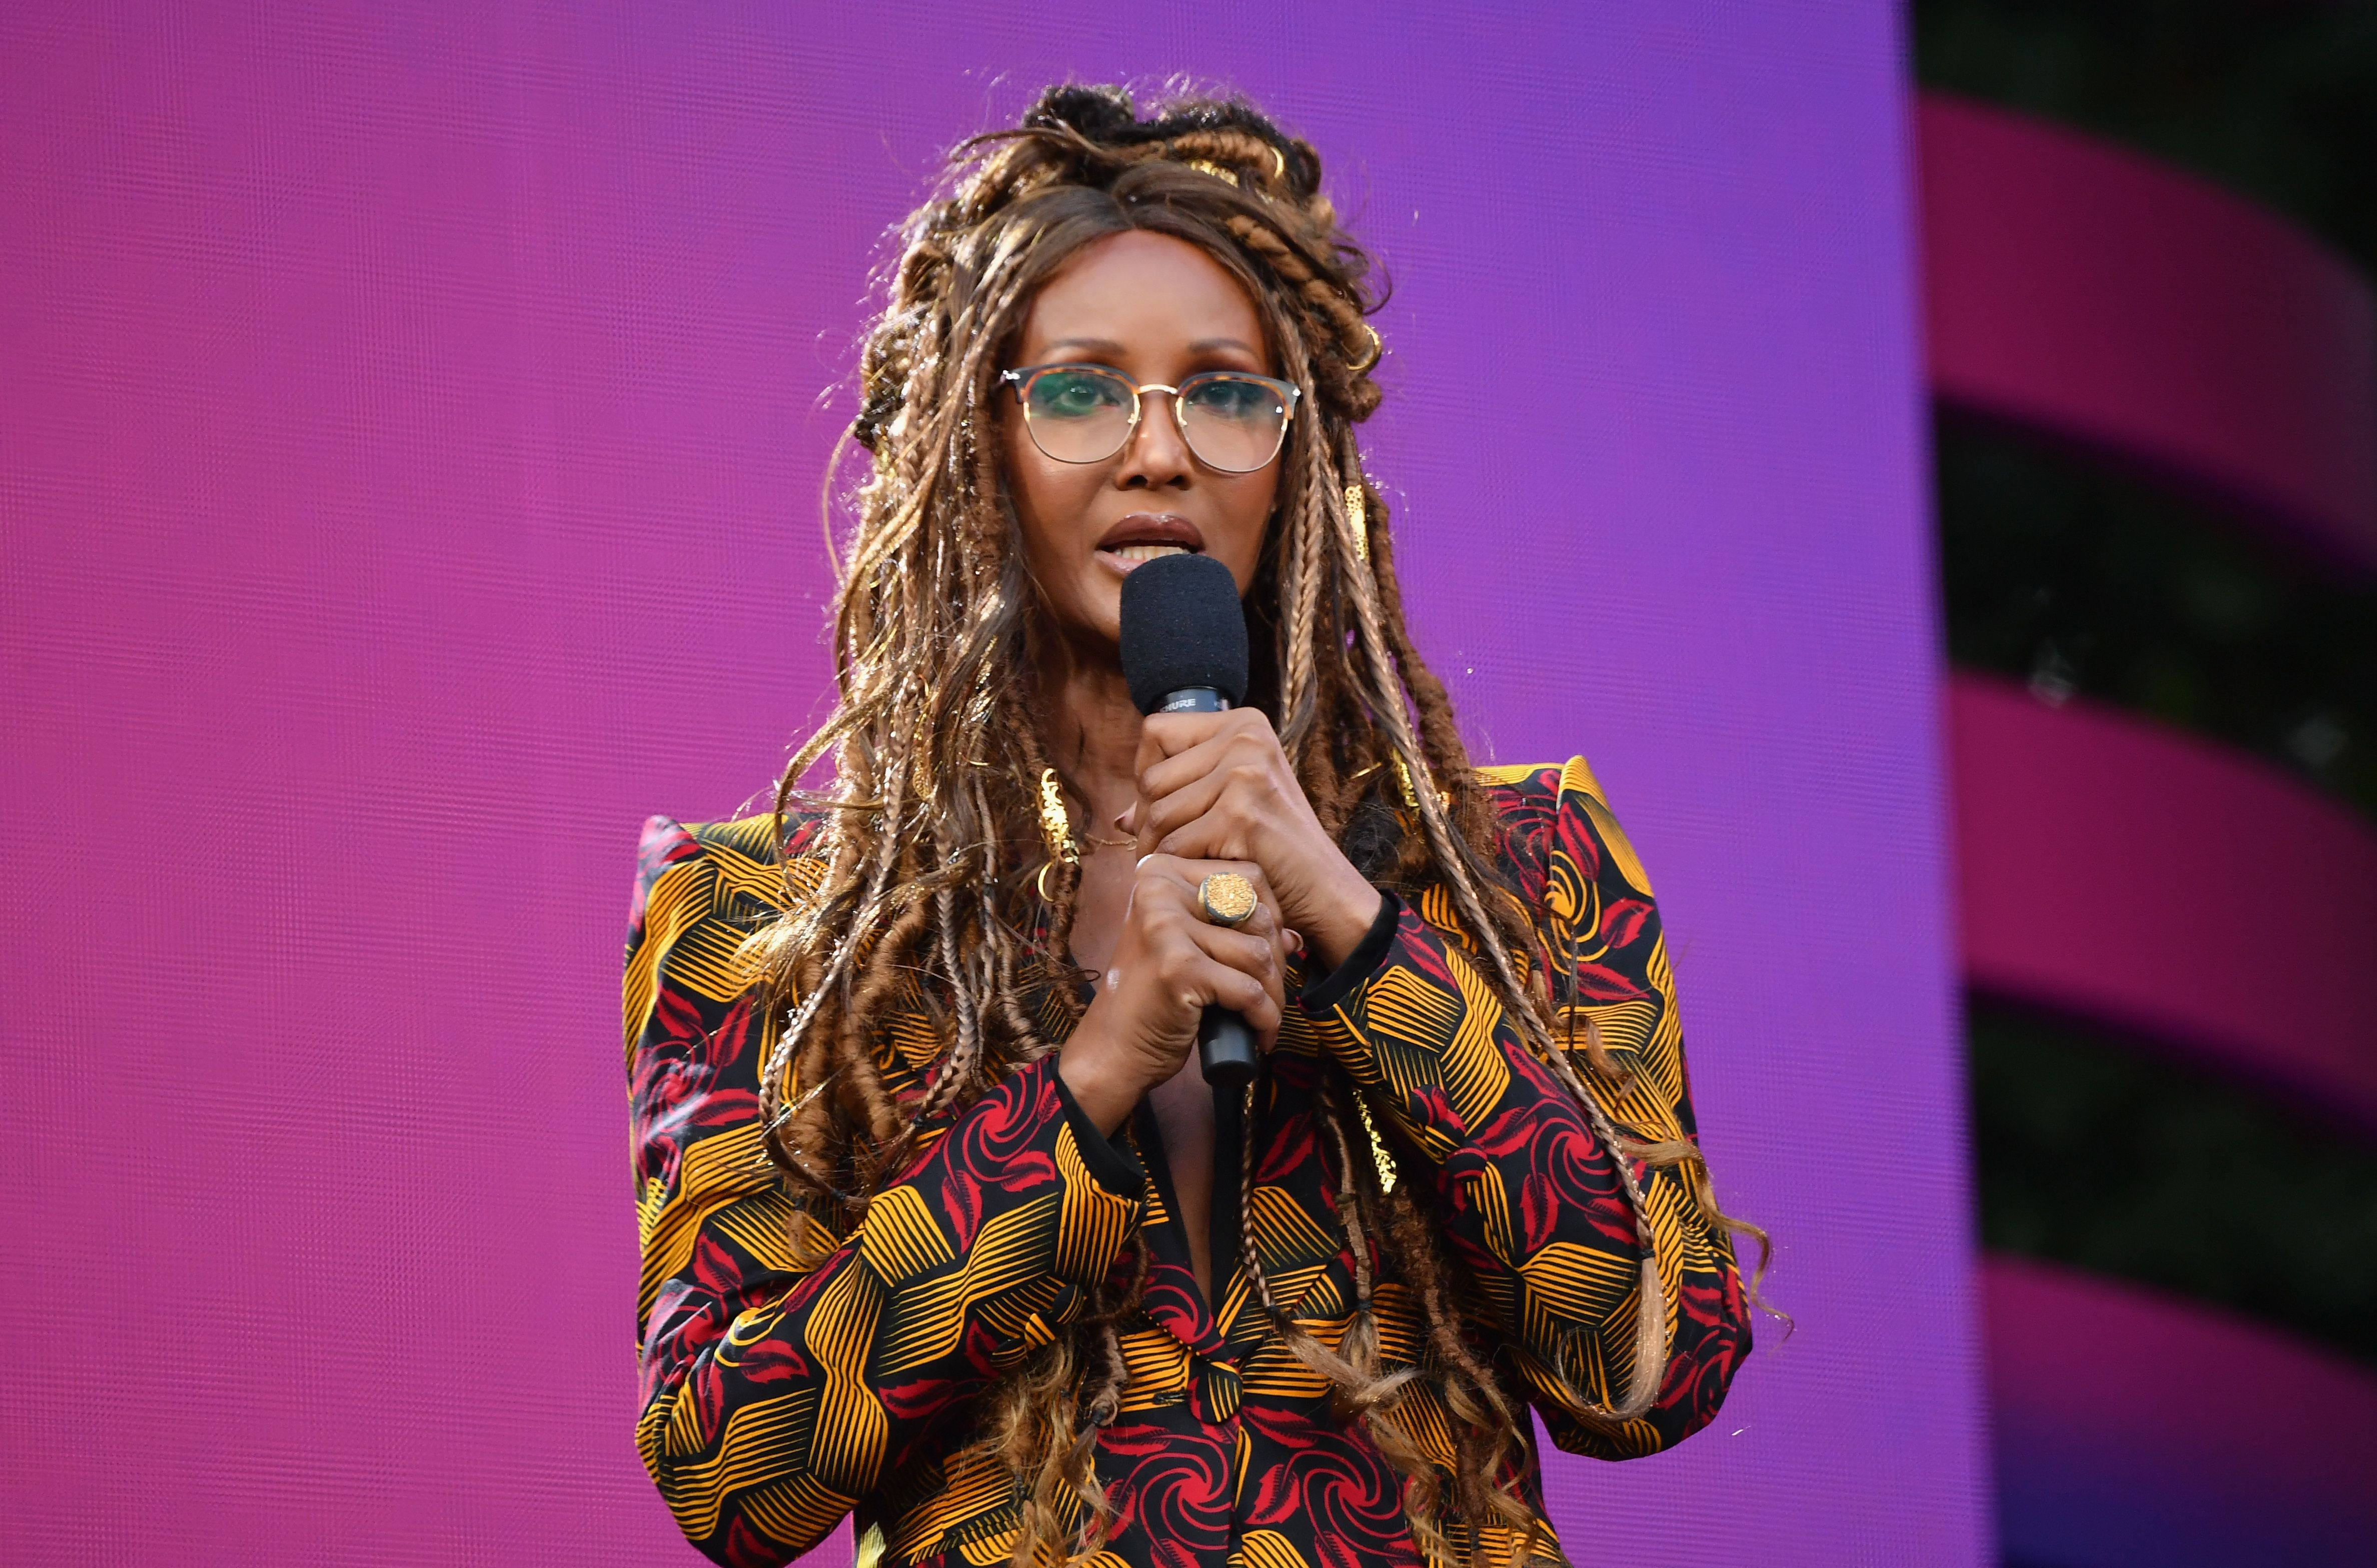 US-Somali model and actress Iman speaks onstage at the 2019 Global Citizen Festival: Power The Movement in Central Park in New York on September 28, 2019. (Photo by Angela Weiss / AFP)        (Photo credit should read ANGELA WEISS/AFP/Getty Images)